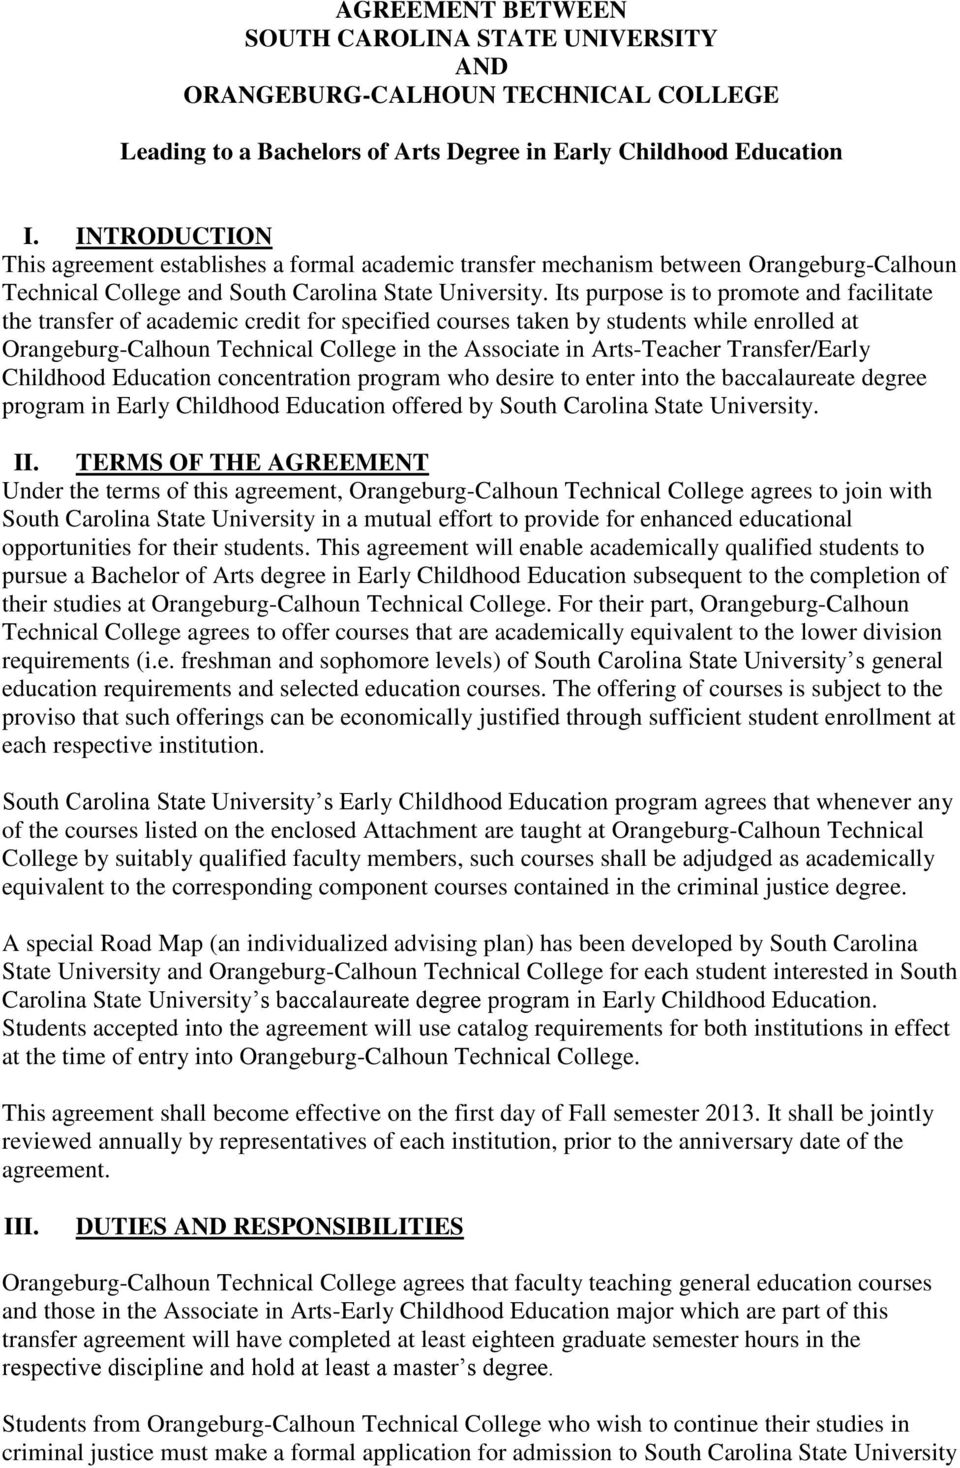 Its purpose is to promote and facilitate the transfer of academic credit for specified courses taken by students while enrolled at Orangeburg-Calhoun Technical College in the Associate in